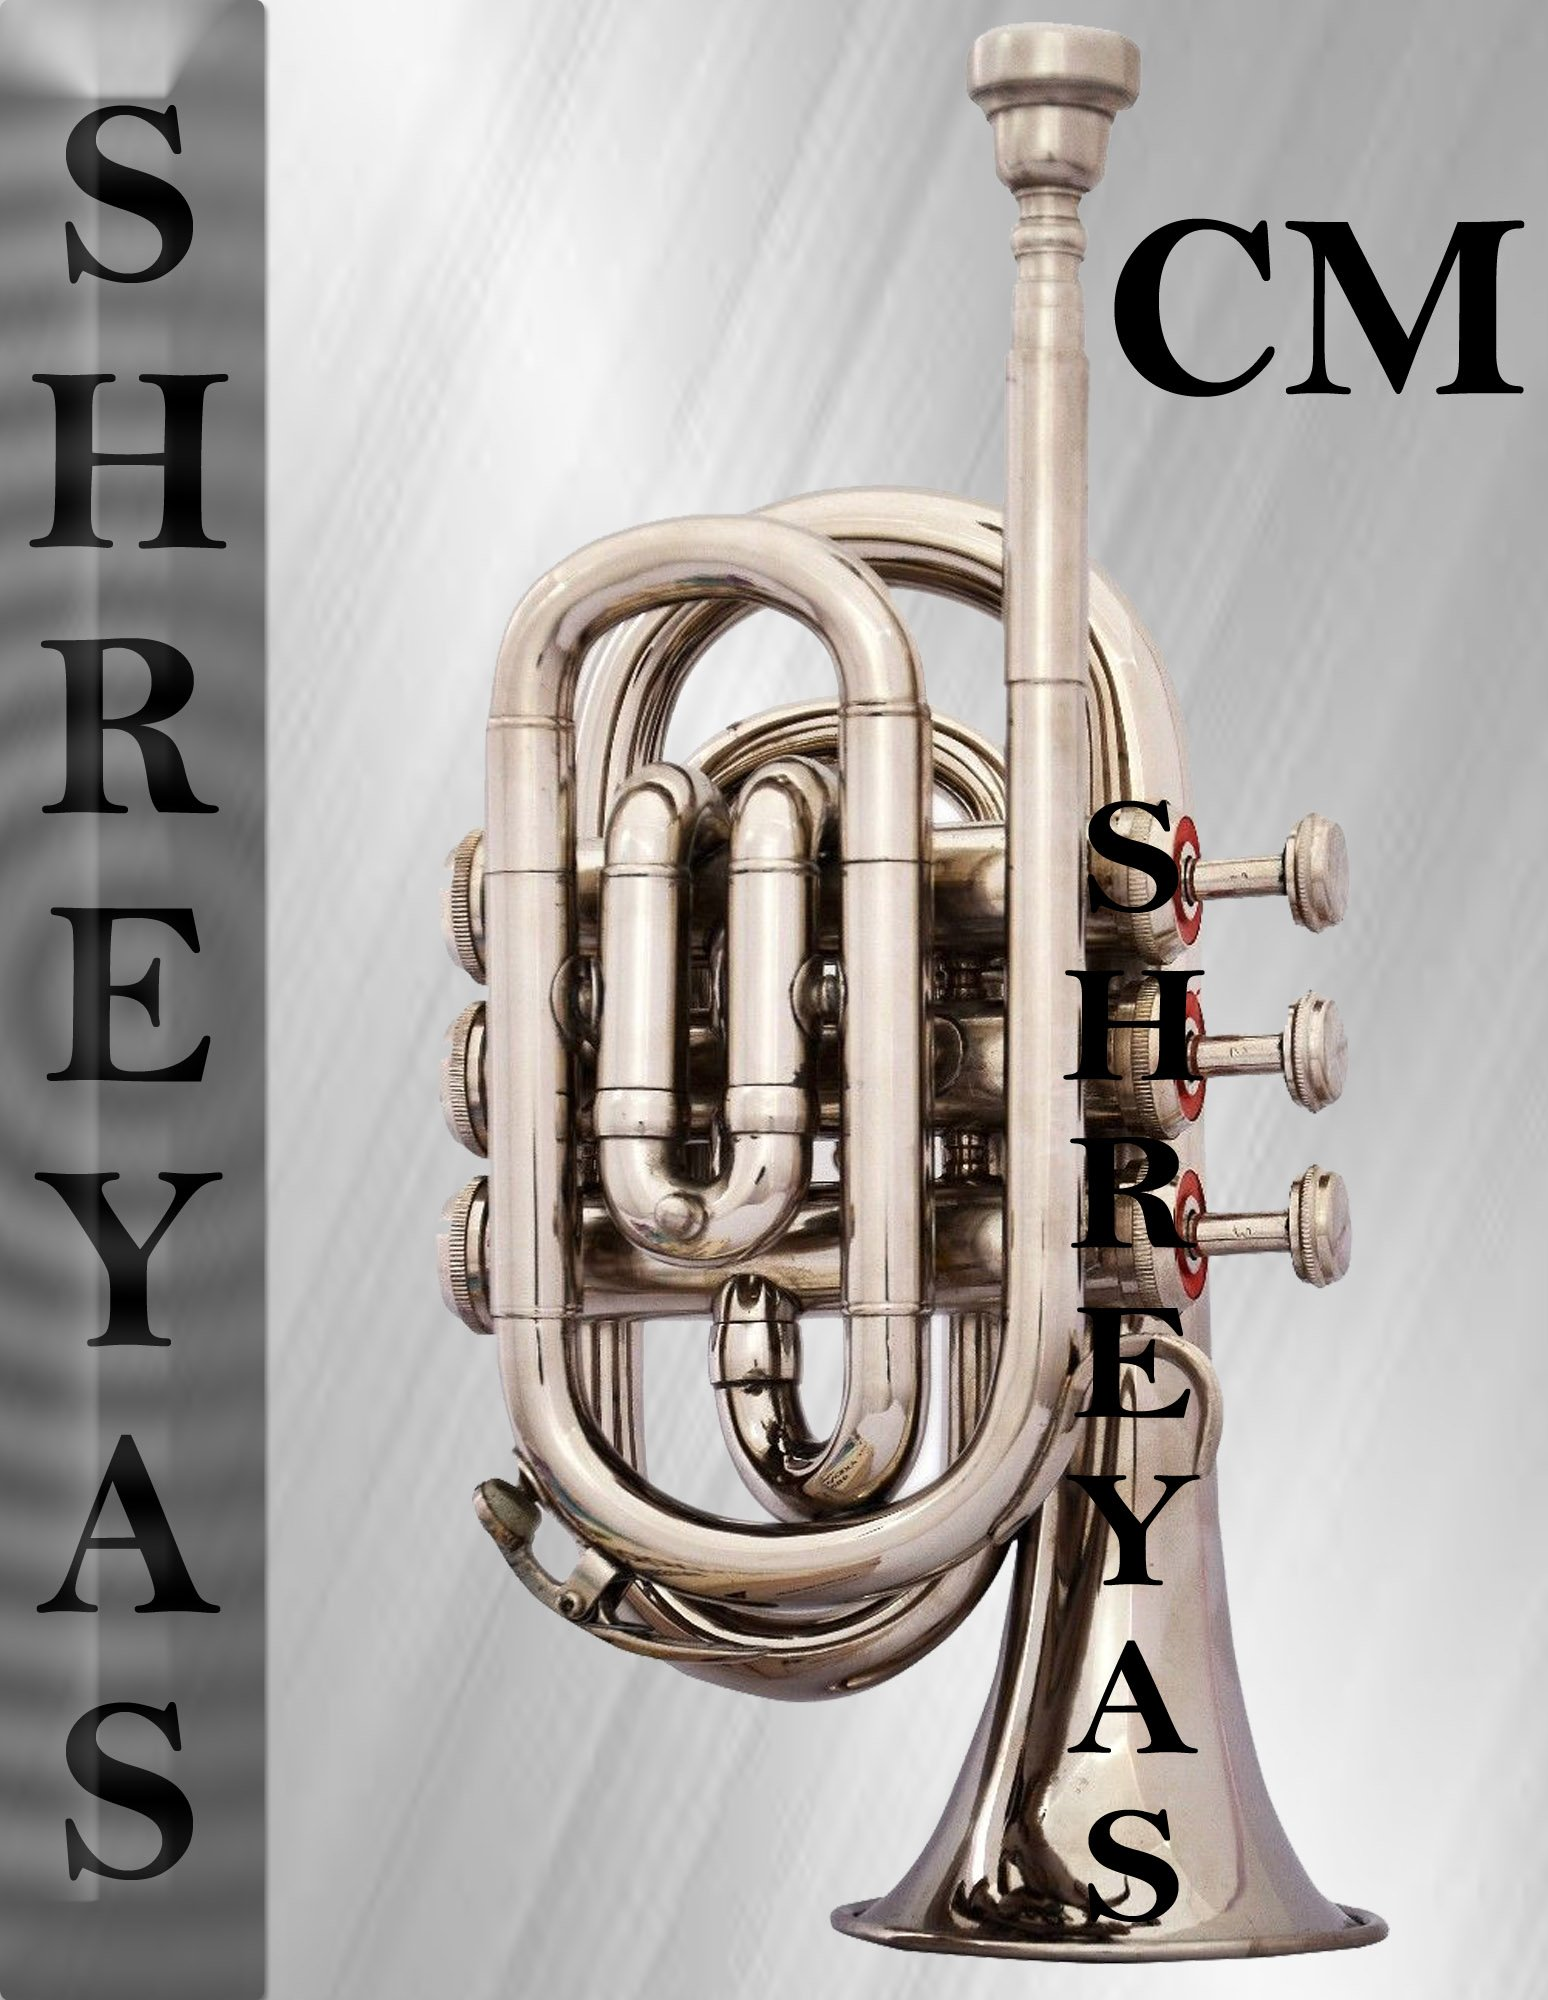 SHREYAS POCKET TRUMPET Bb NICKEL PLATED WITH BAG 7C MOUTH PIECE